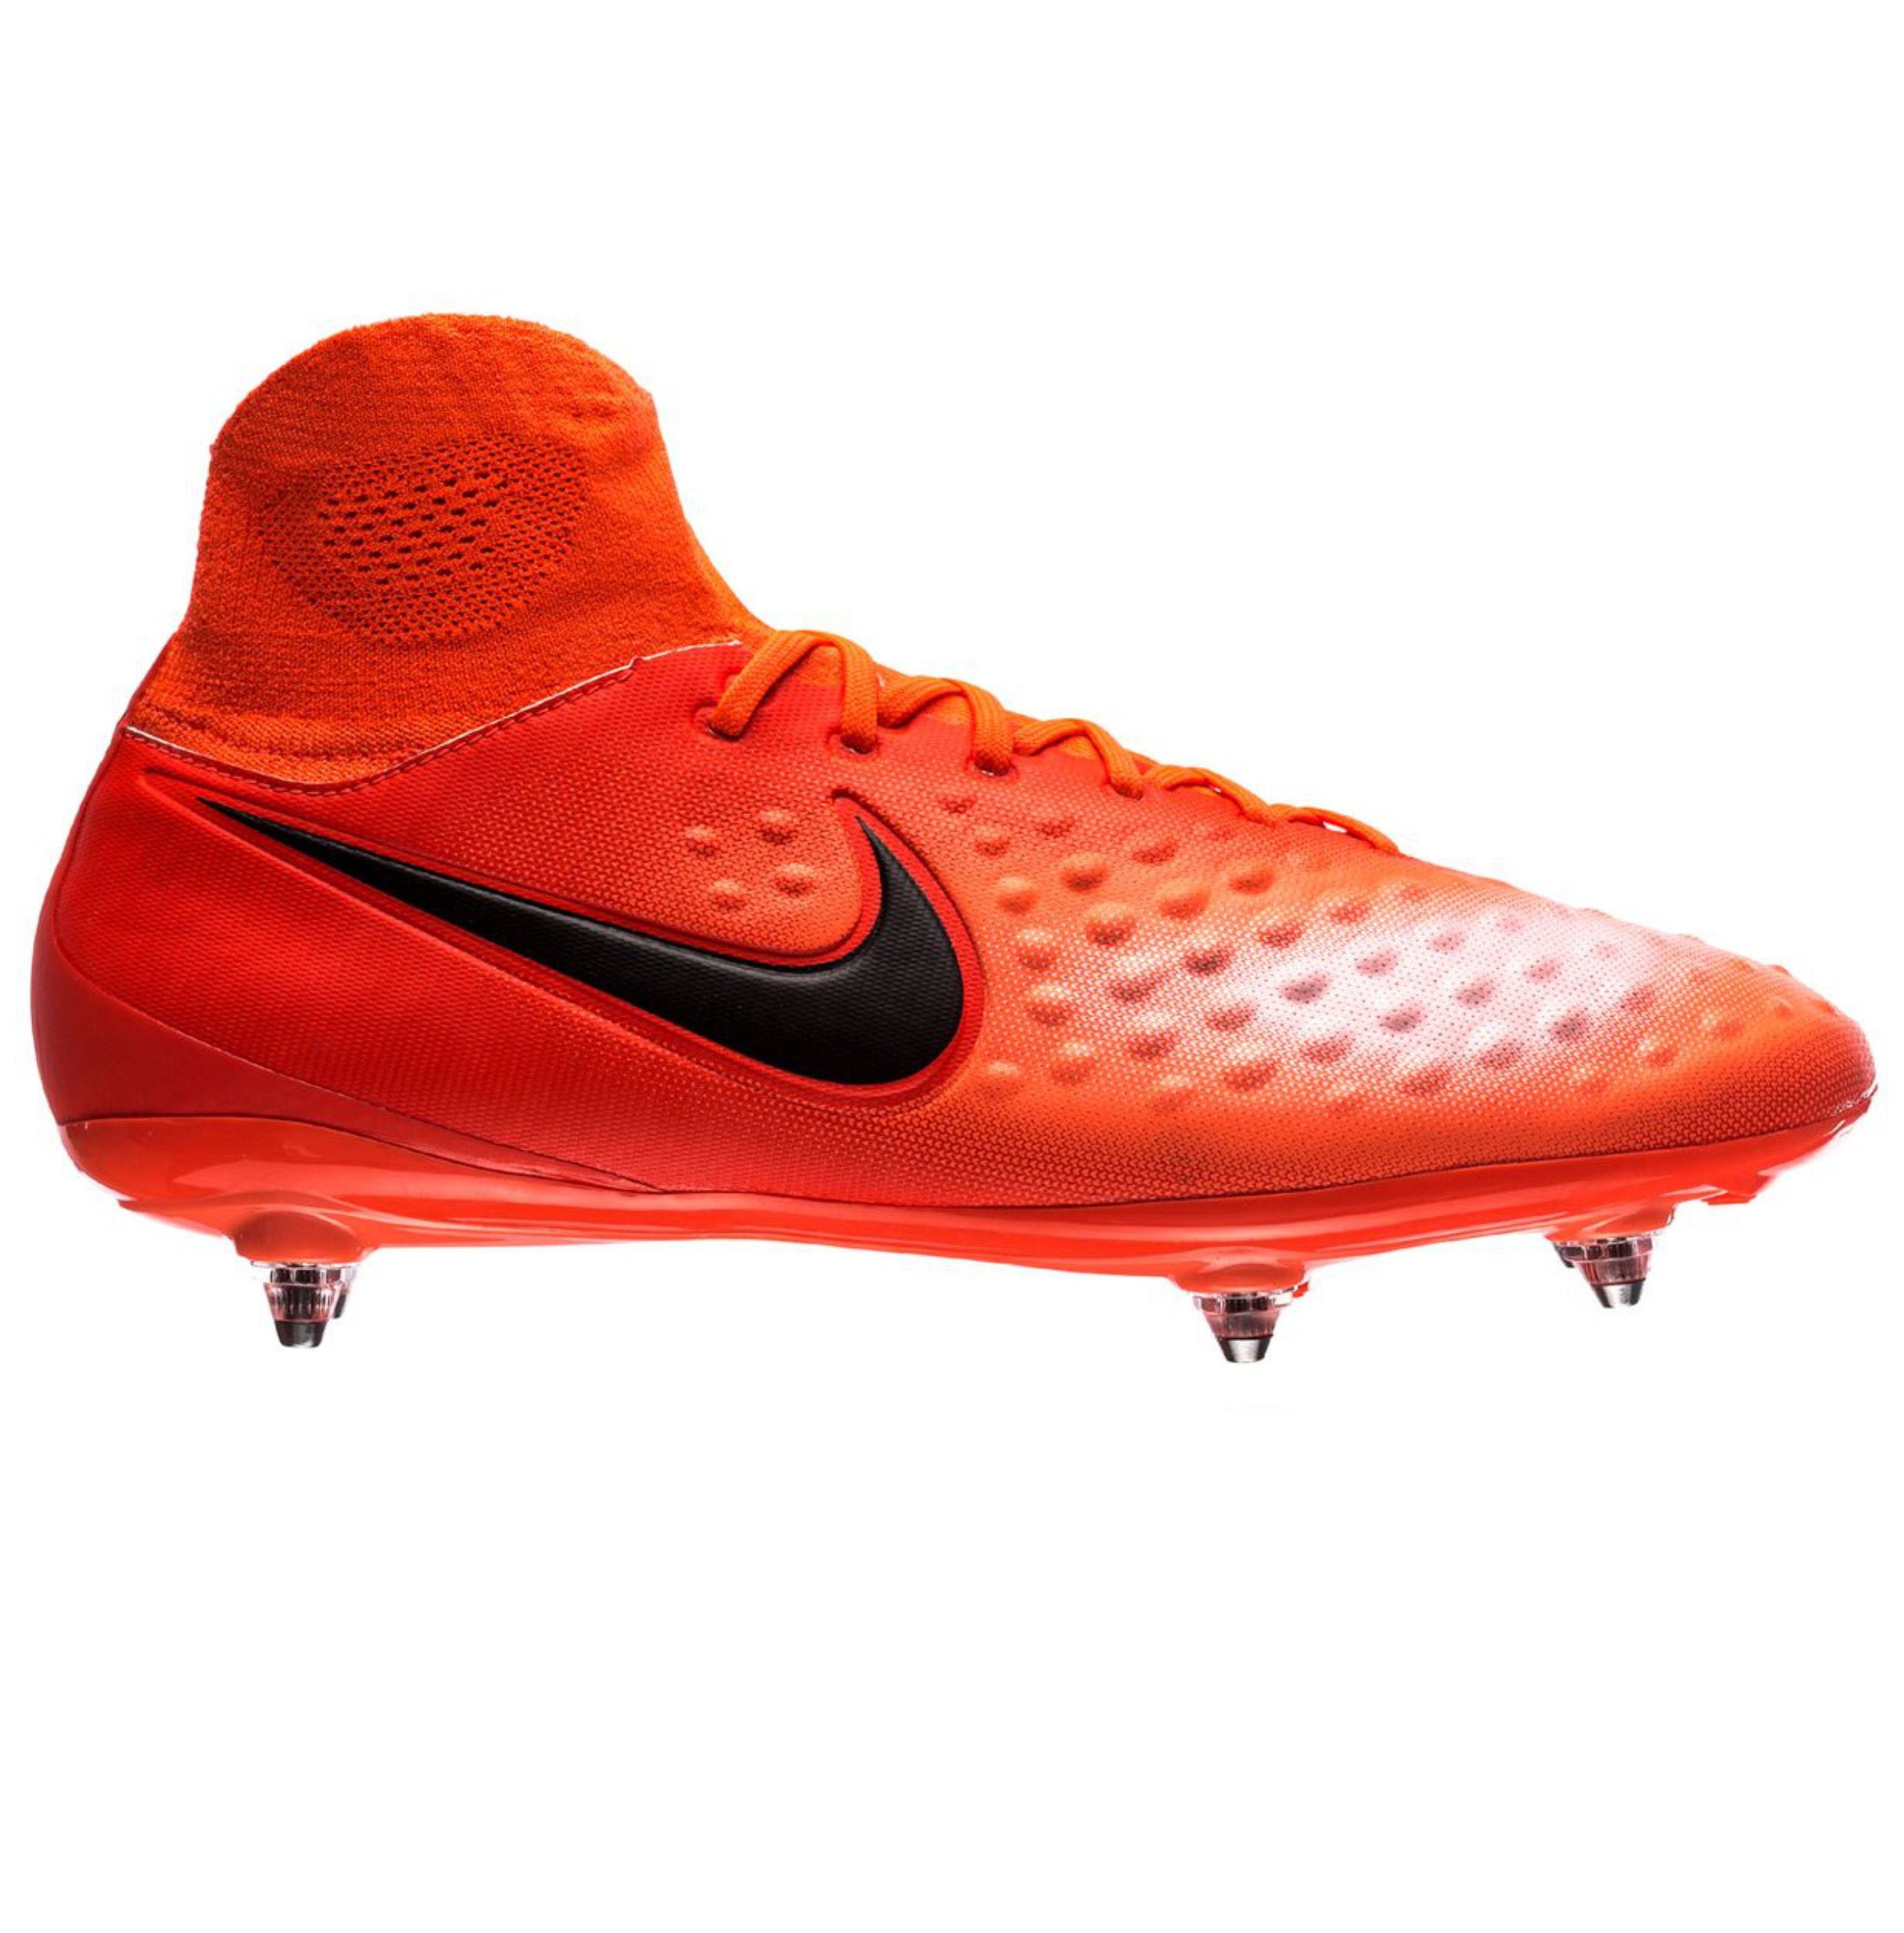 nike football shoes hd photos style guru fashion glitz